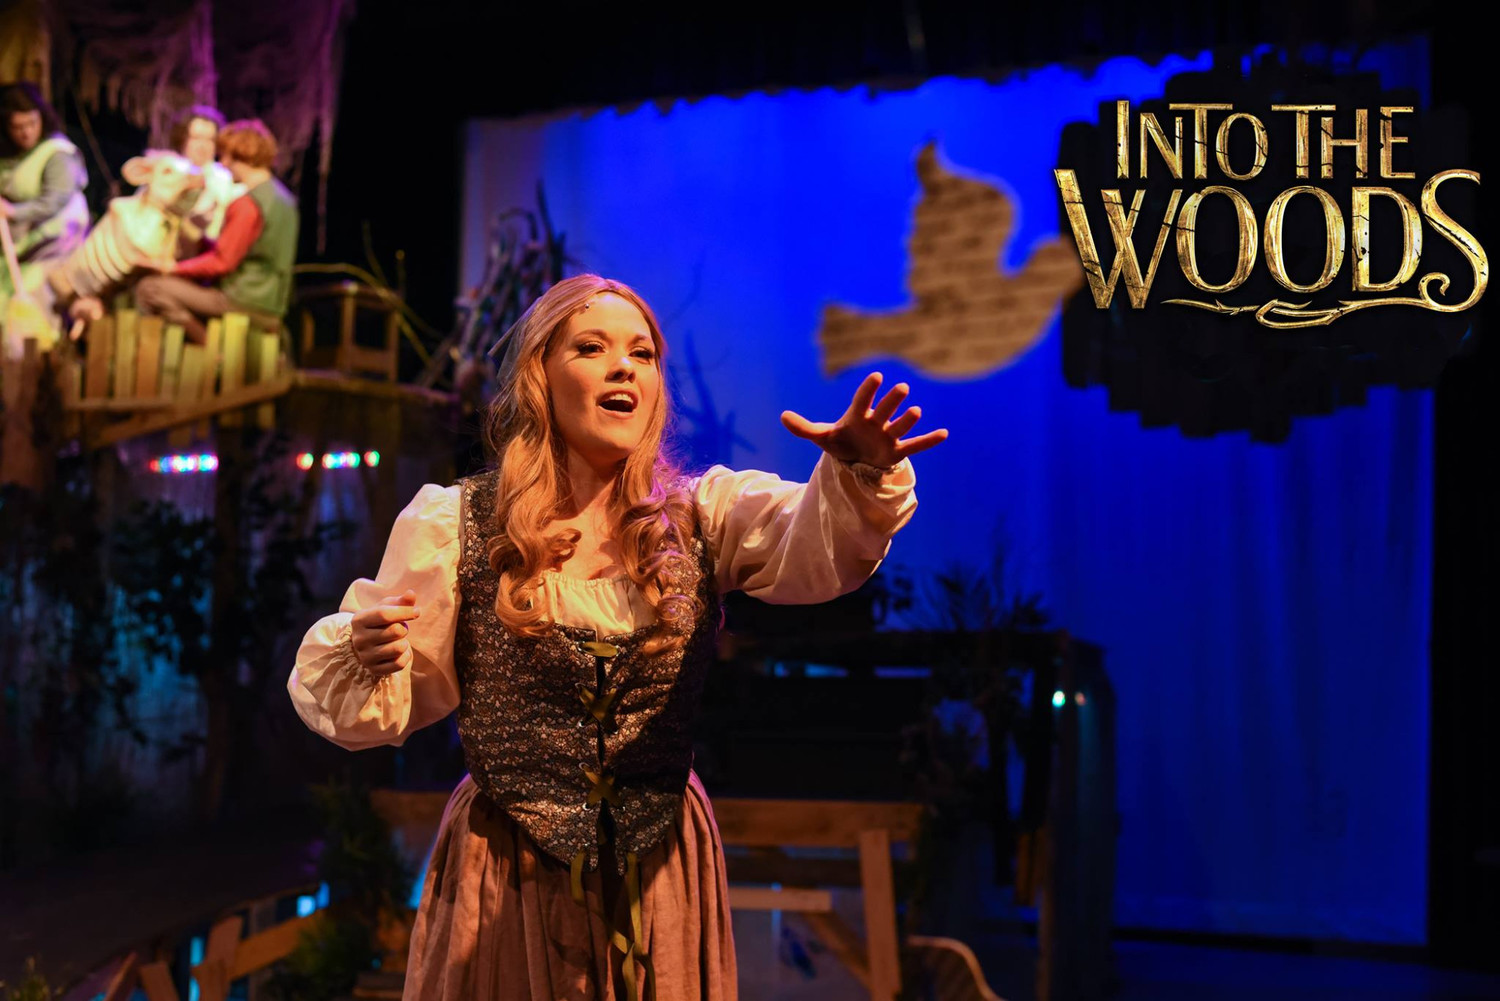 BWW Review: Pitch Perfect INTO THE WOODS Dazzles at Centre Stage